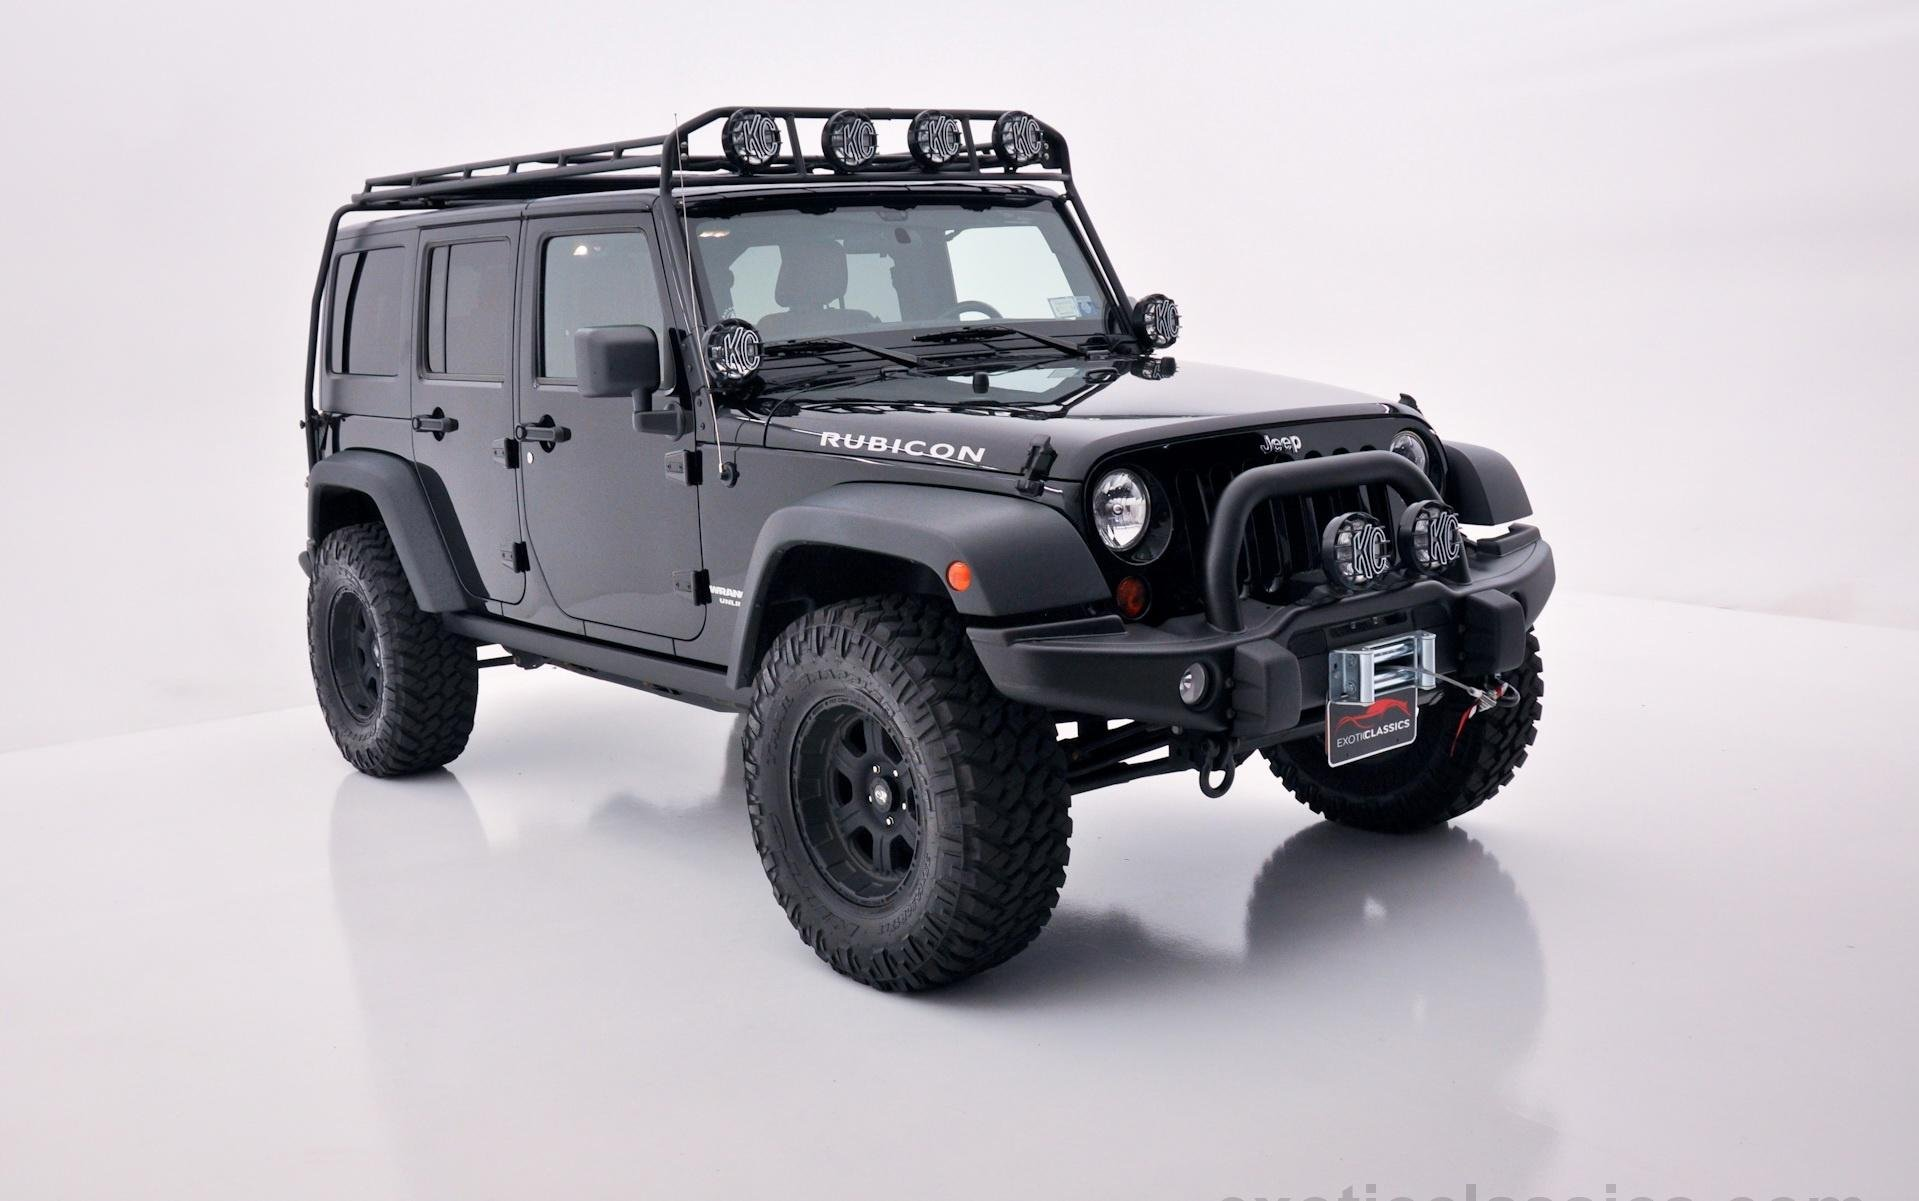 2011 jeep wrangler unlimited rubicon black 4wd all road 4x4 cars wallpaper 1919x1201 711418. Black Bedroom Furniture Sets. Home Design Ideas